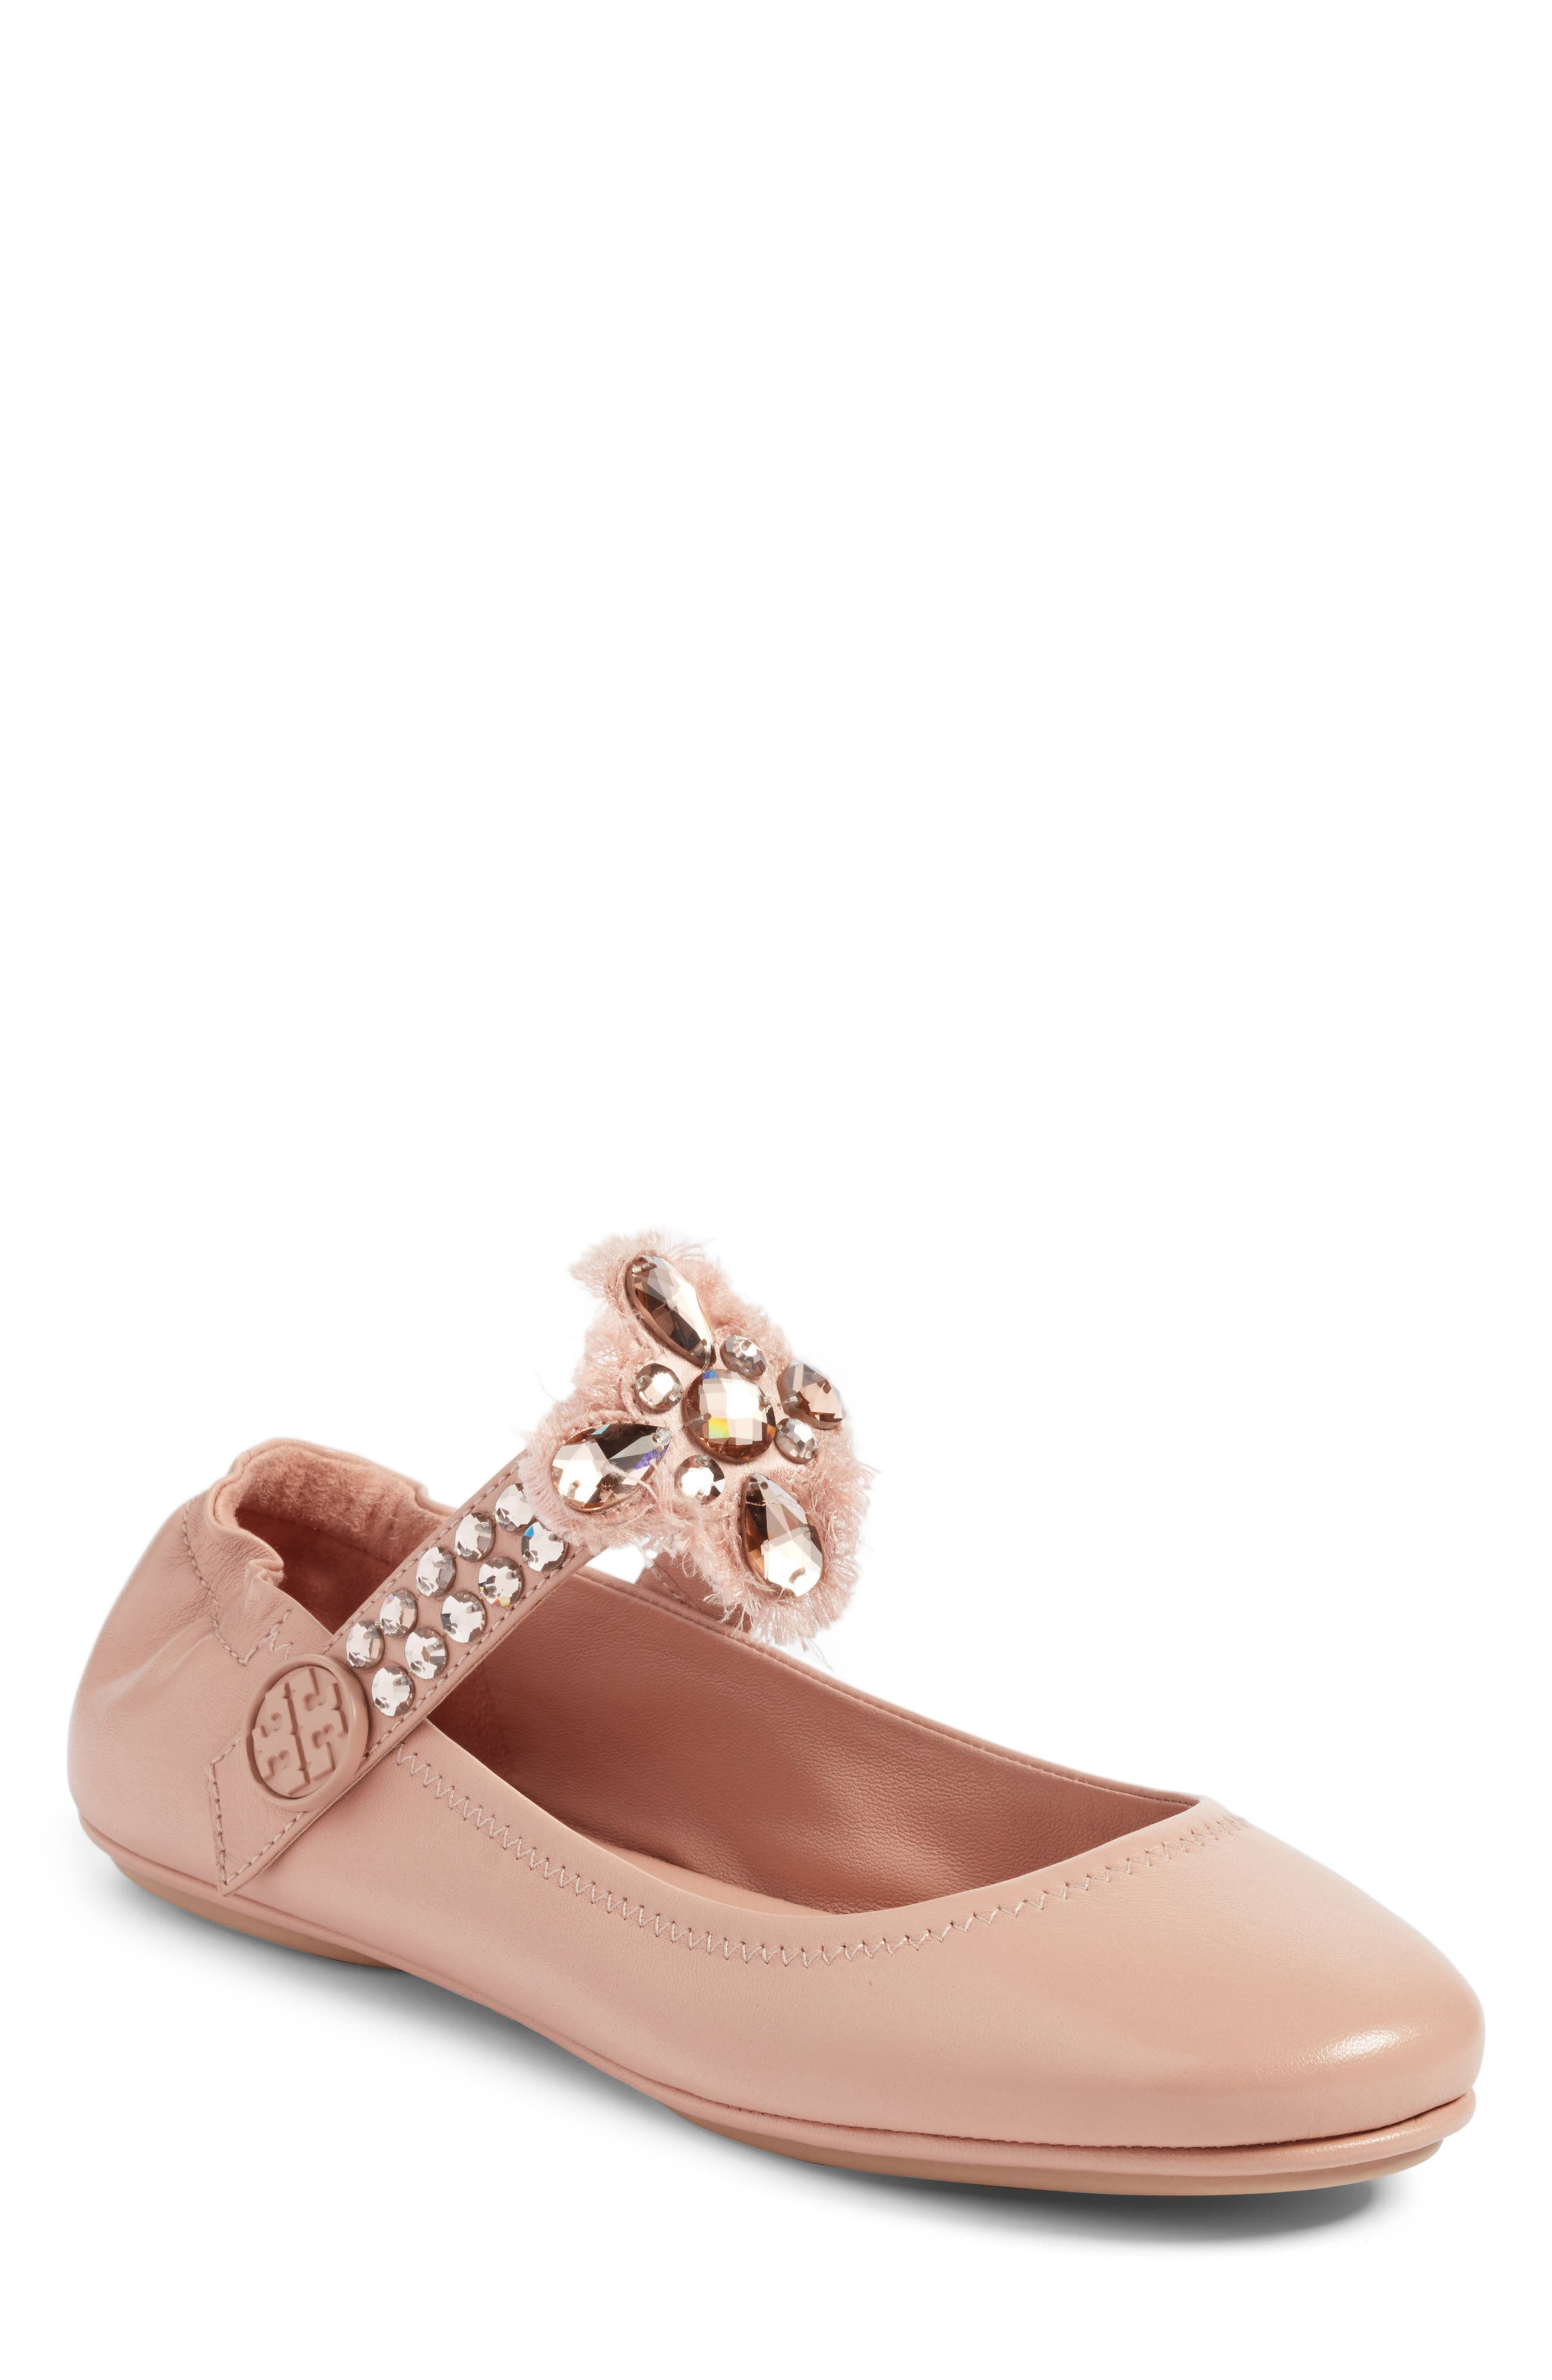 Alternate Image 1 Selected - Tory Burch Minnie Embellished Convertible Strap Ballet Flat (Women)